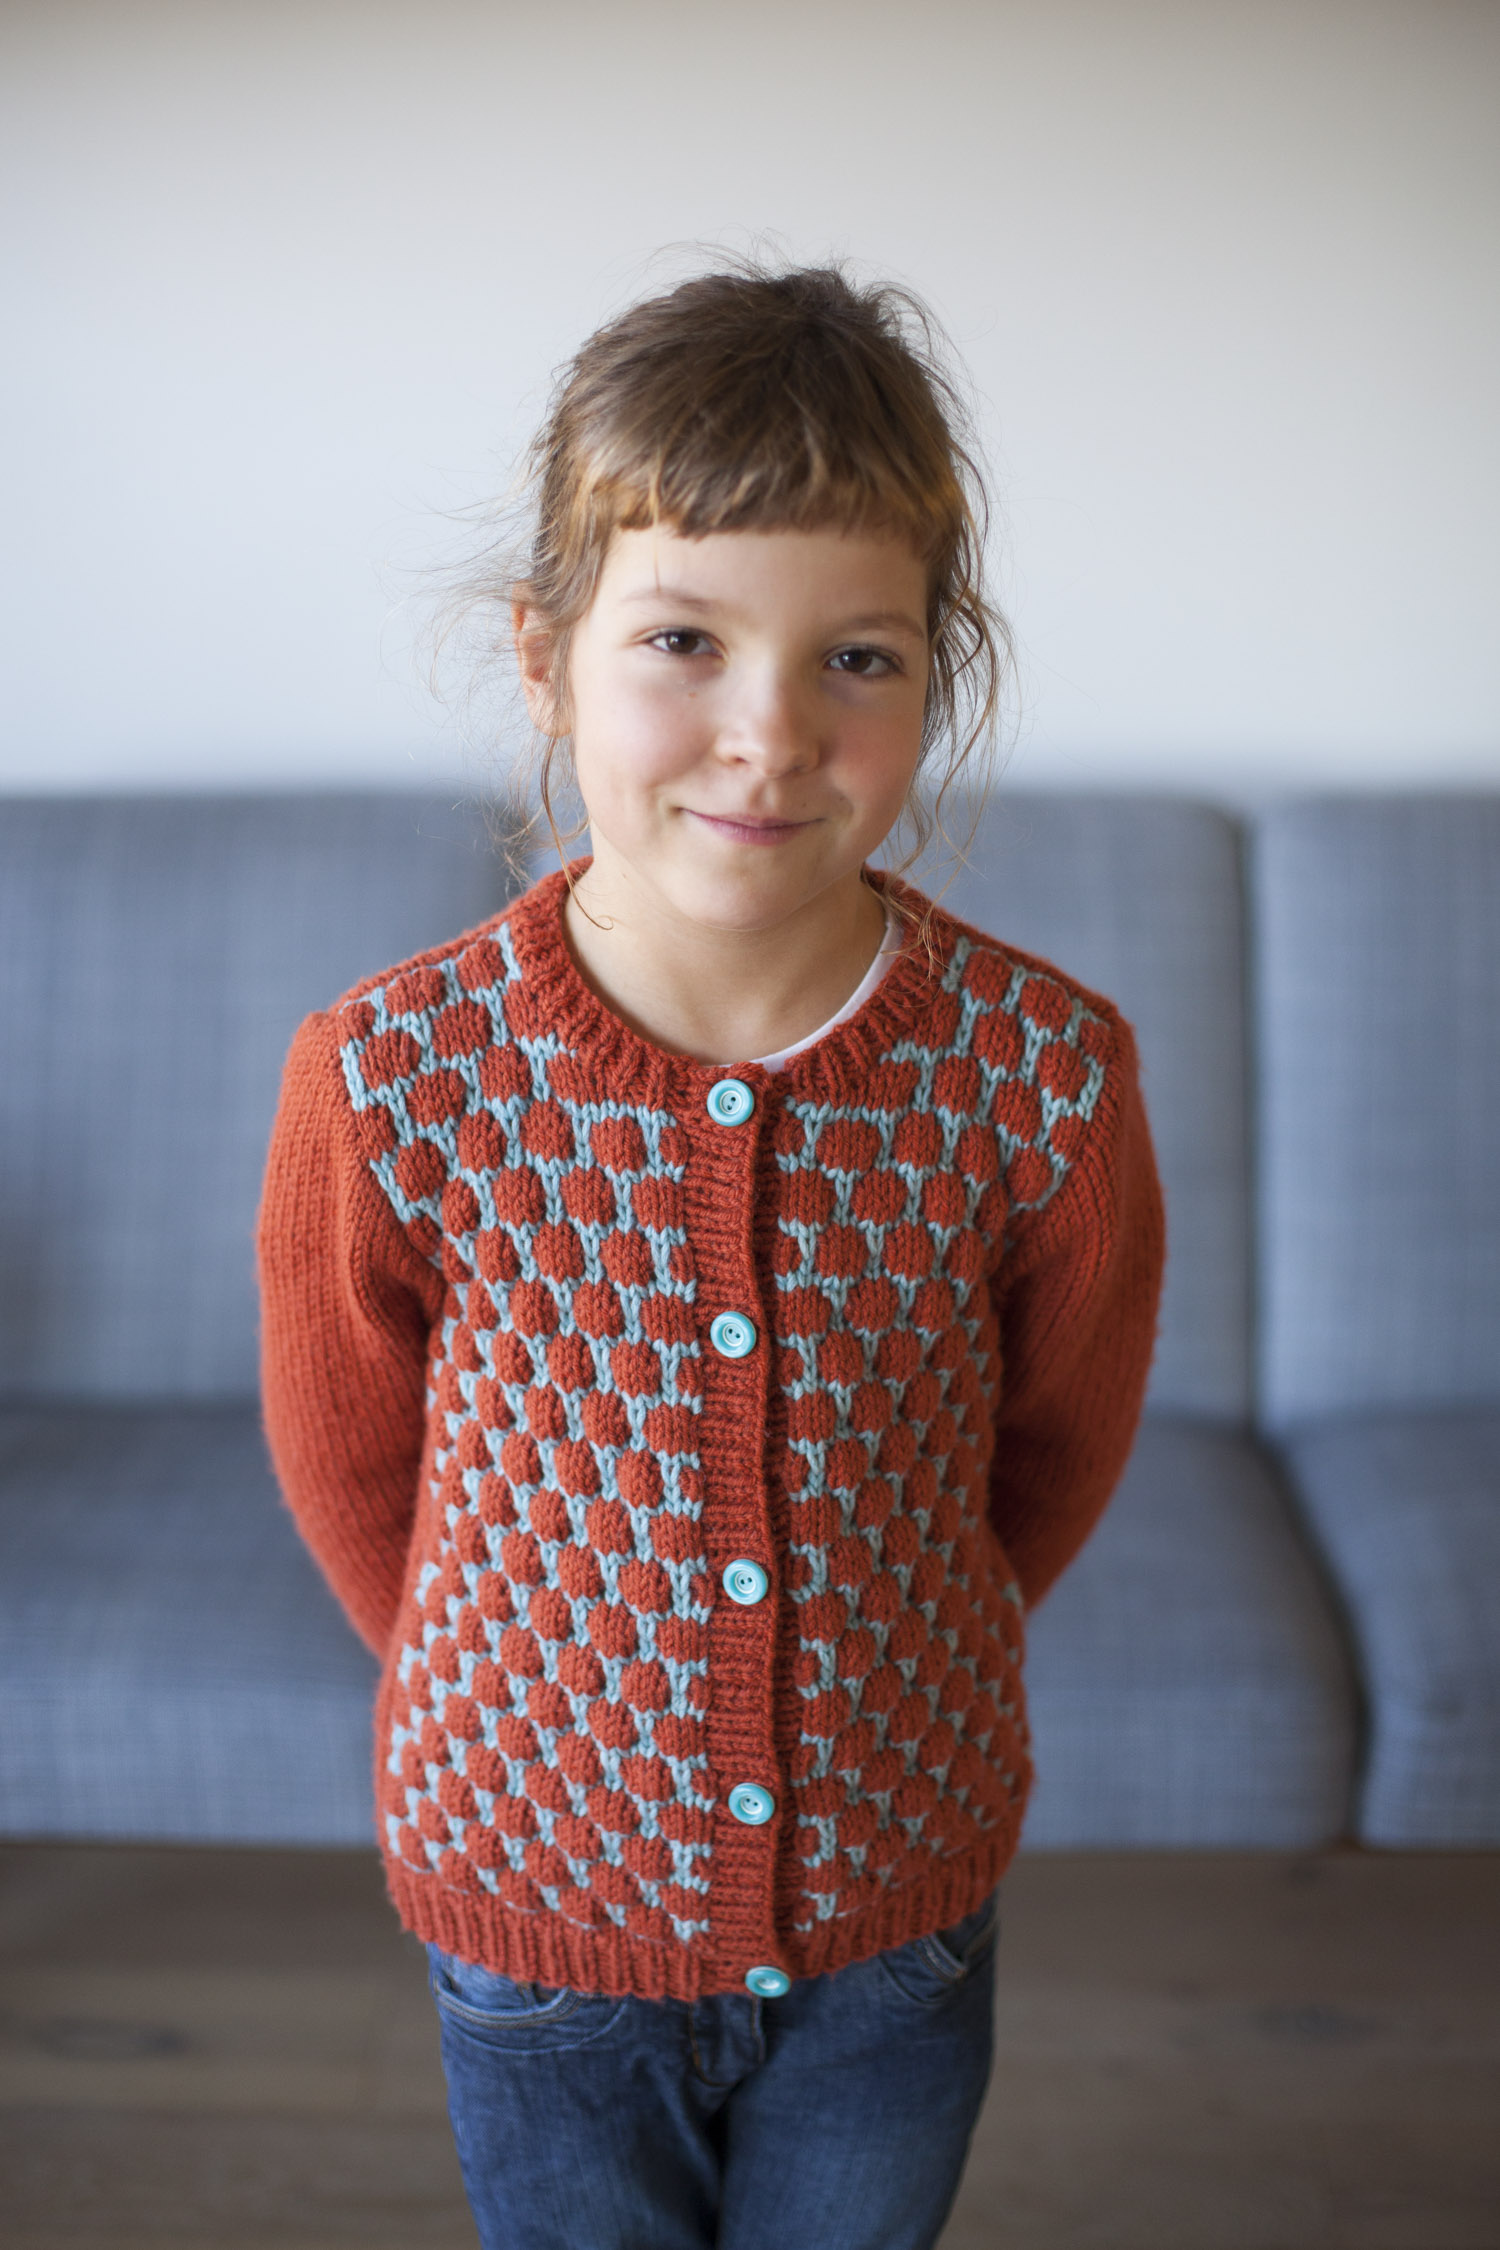 The Dadirri cardigan: the intro of a new knitting pattern | Compagnie-M